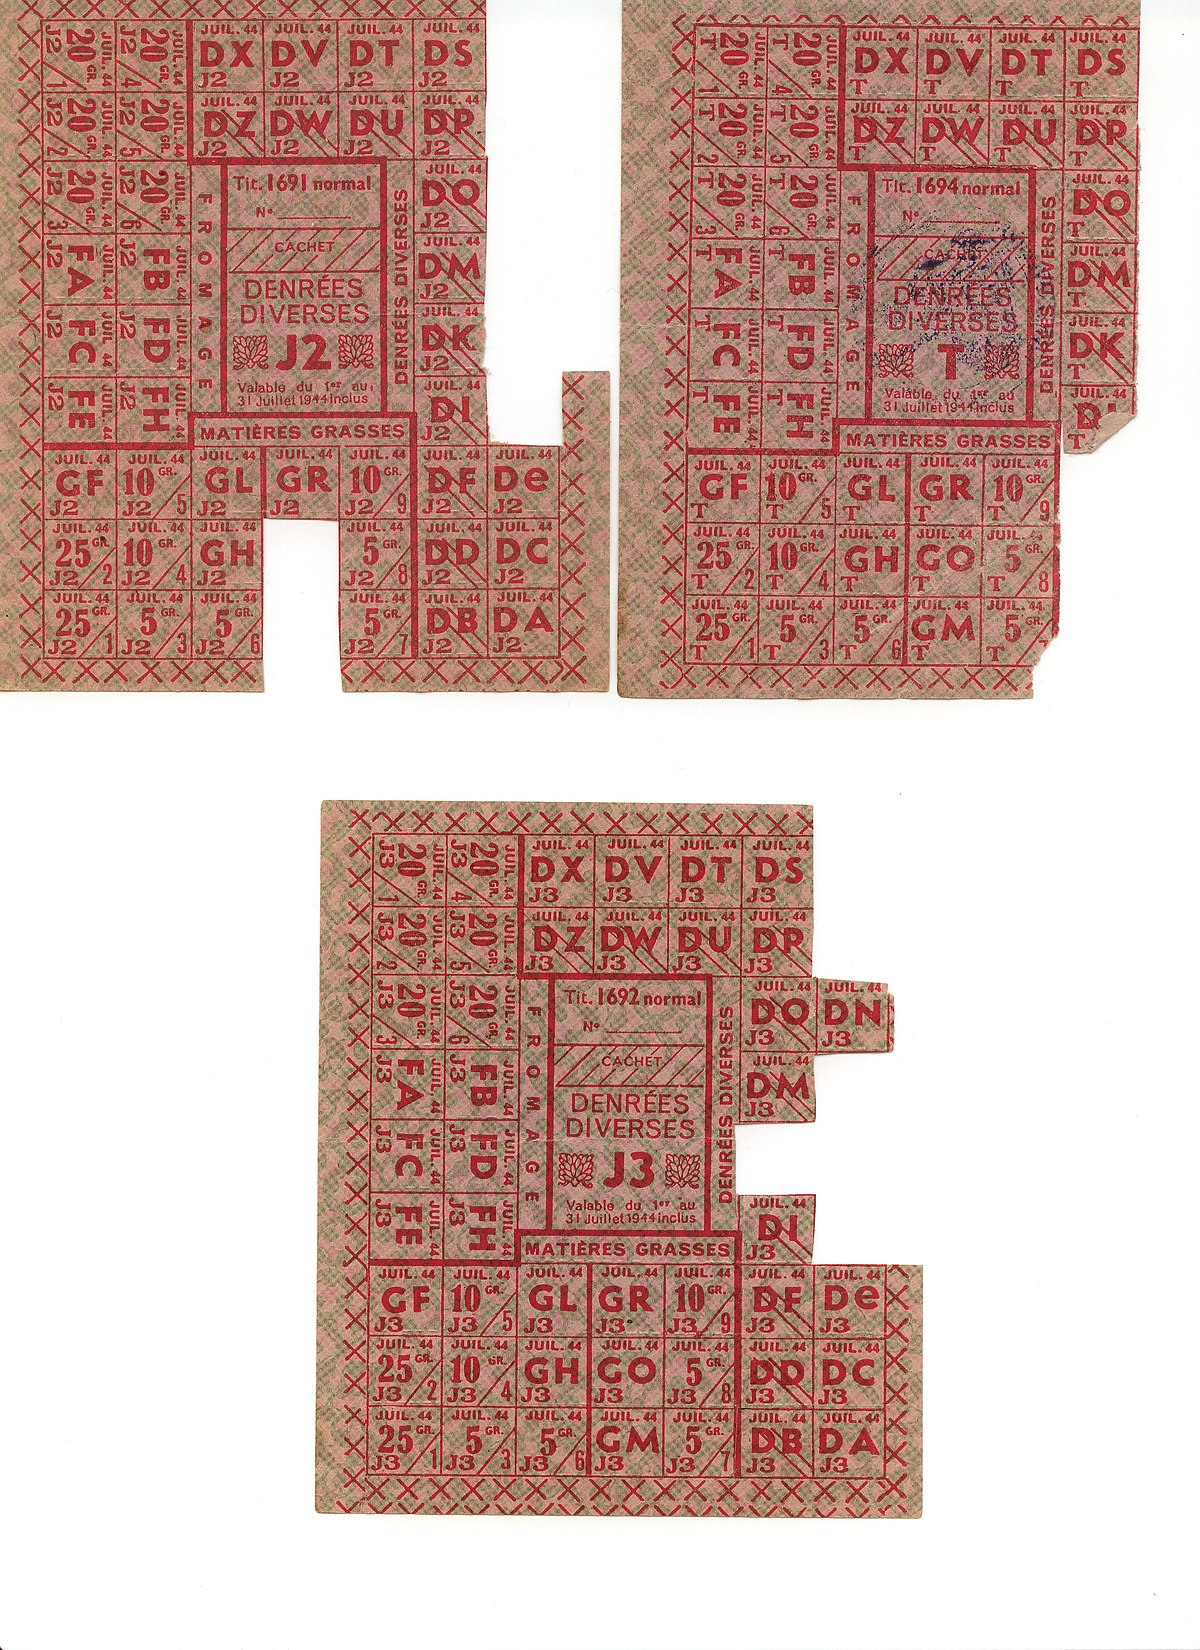 Ration stamps - Wikimedia Commons